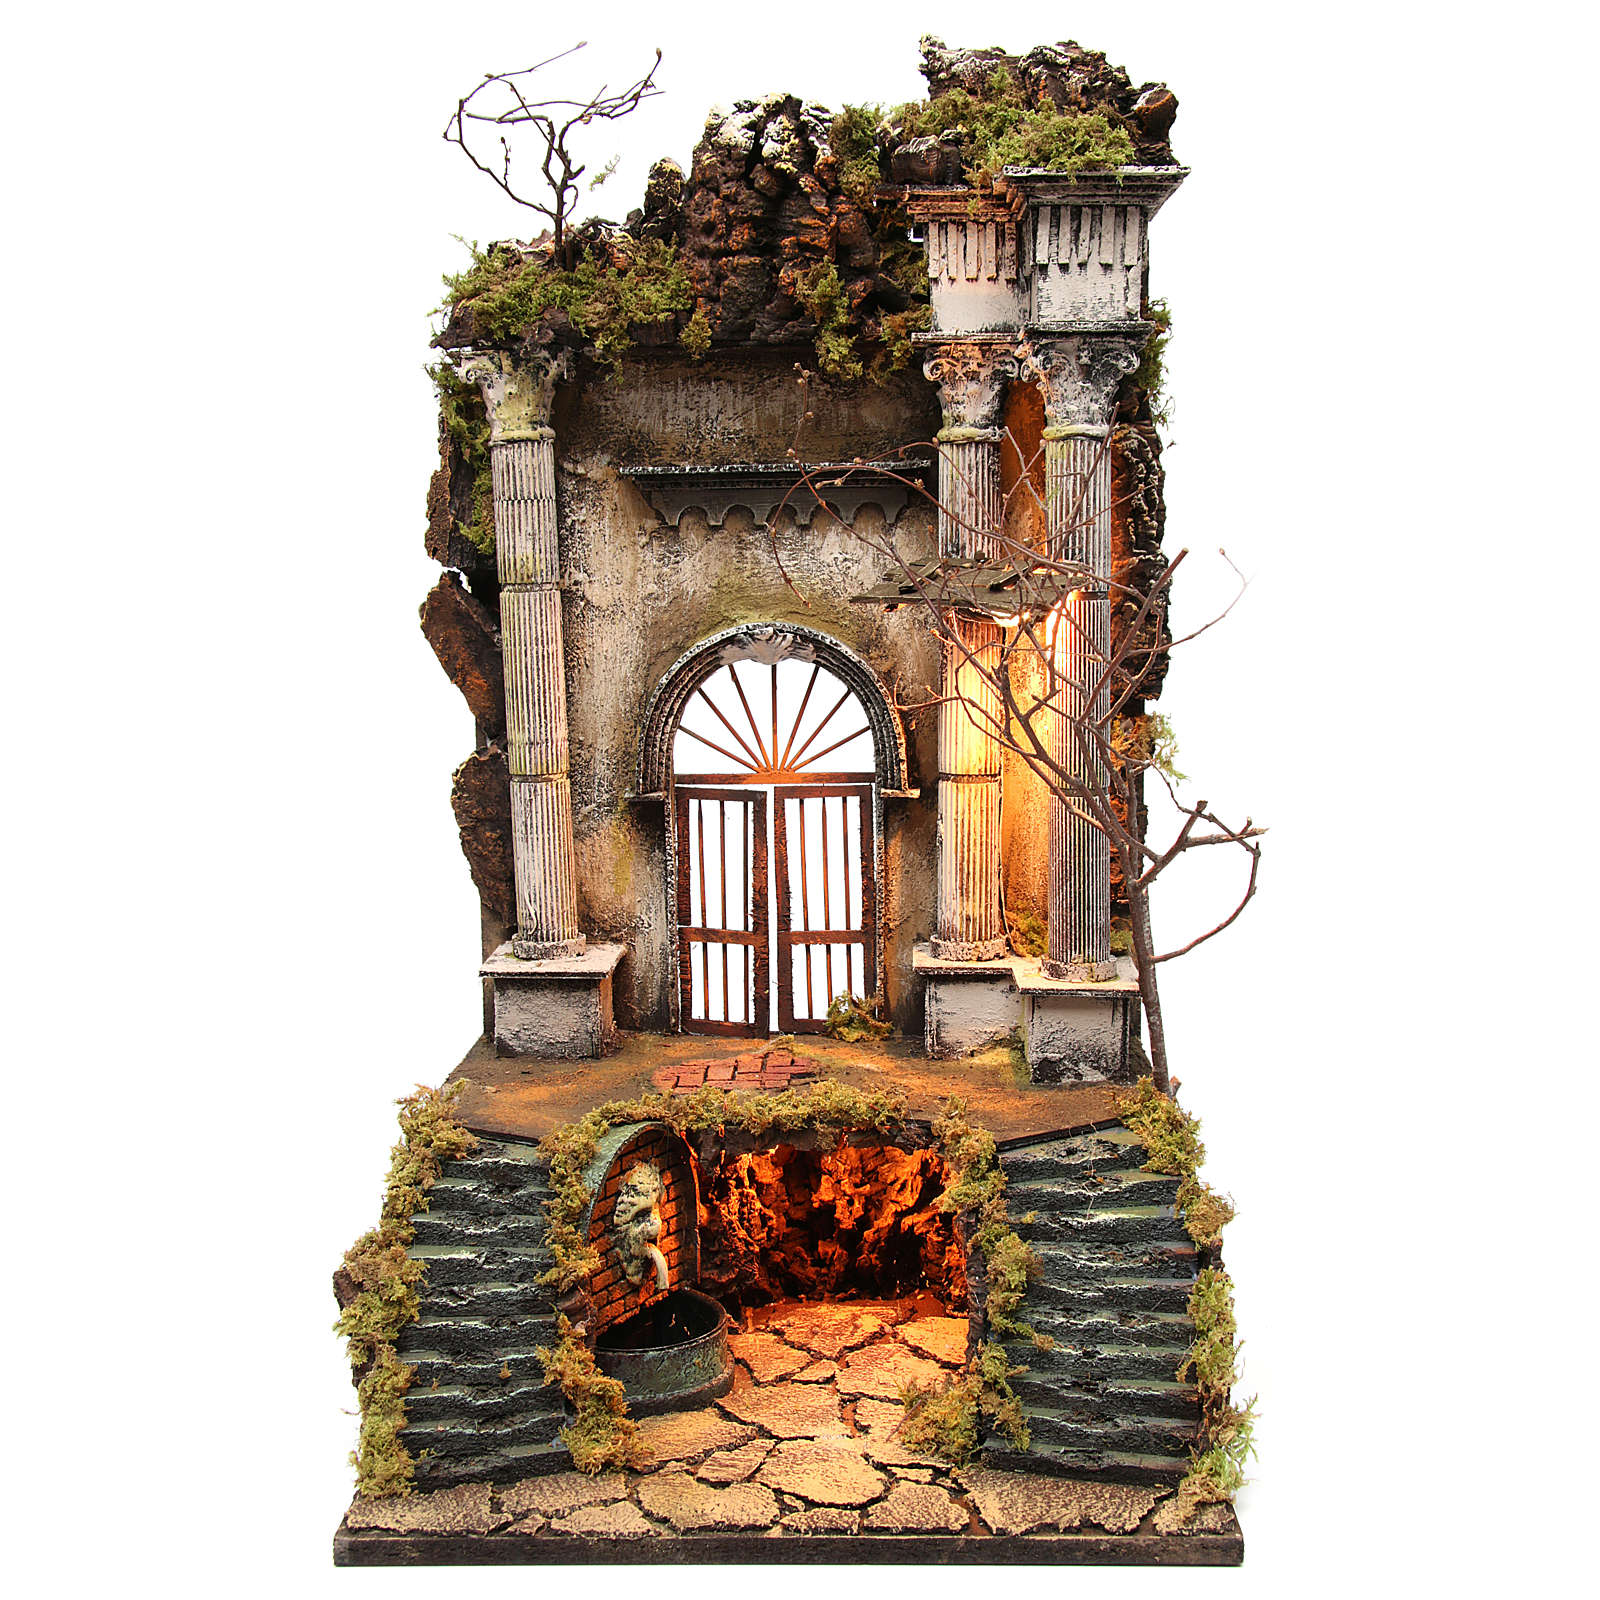 Neapolitan Nativity Scene setting palace entrance with fountain 70x40x40 cm 4